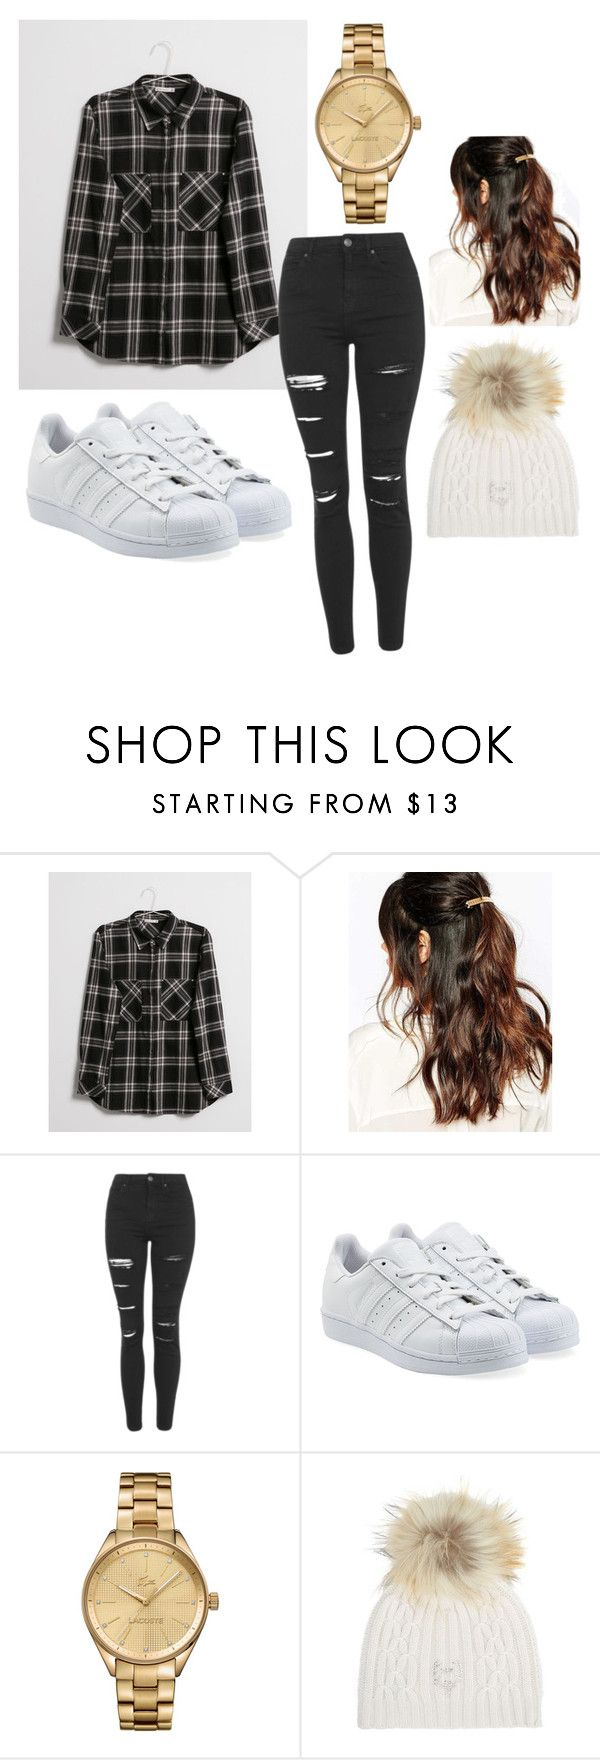 """""""School Outfit"""" by eloise-da-silva ❤ liked on Polyvore featuring Bershka, Suzywan DELUXE, Topshop, adidas Originals, Lacoste and M. Miller"""